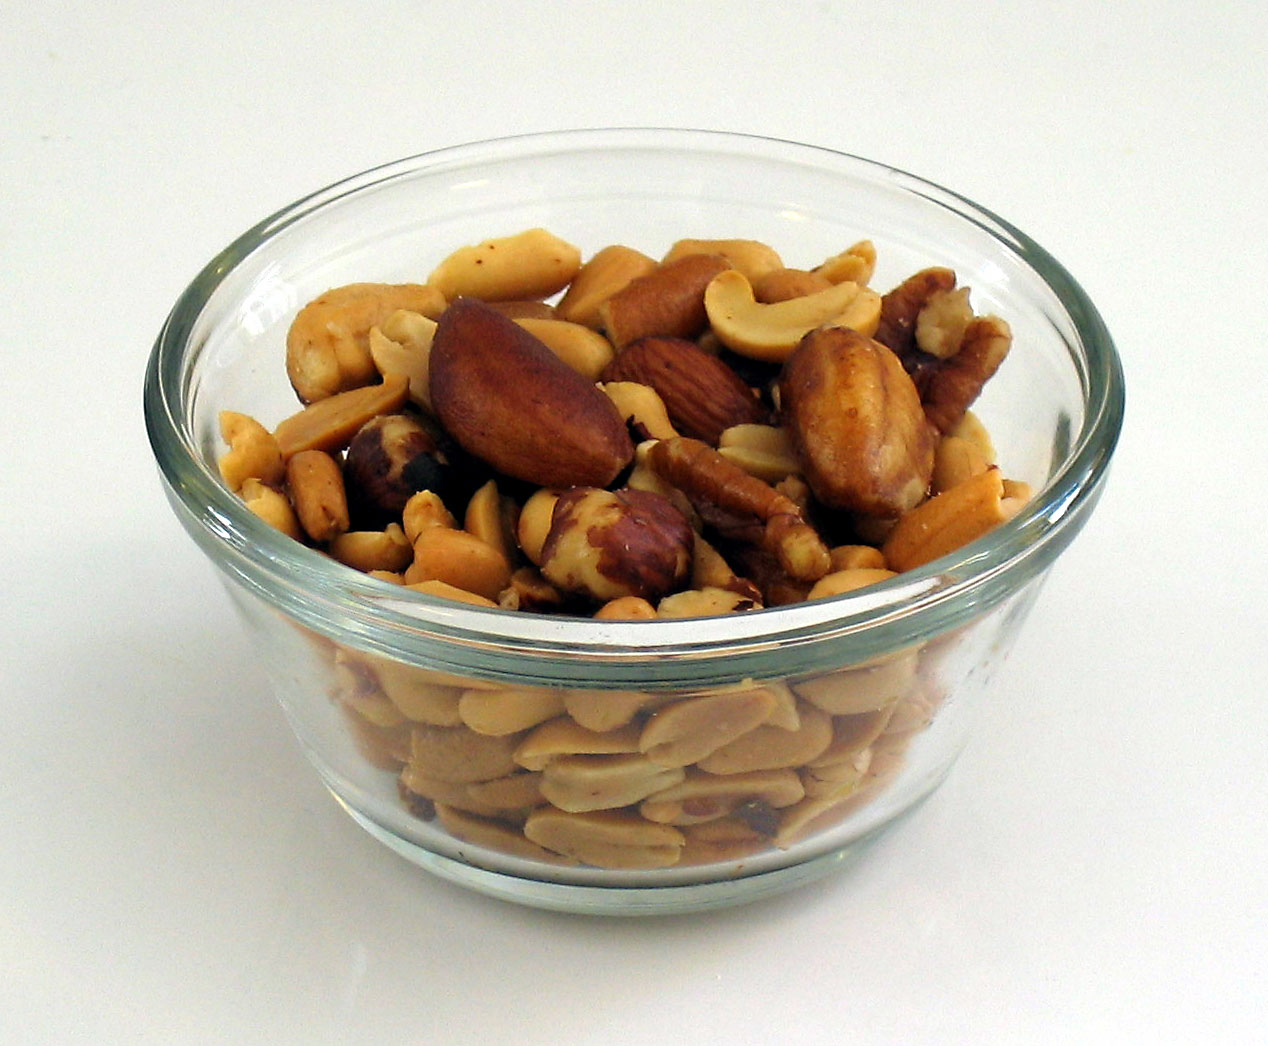 Mixed_nuts_small_white2.jpg